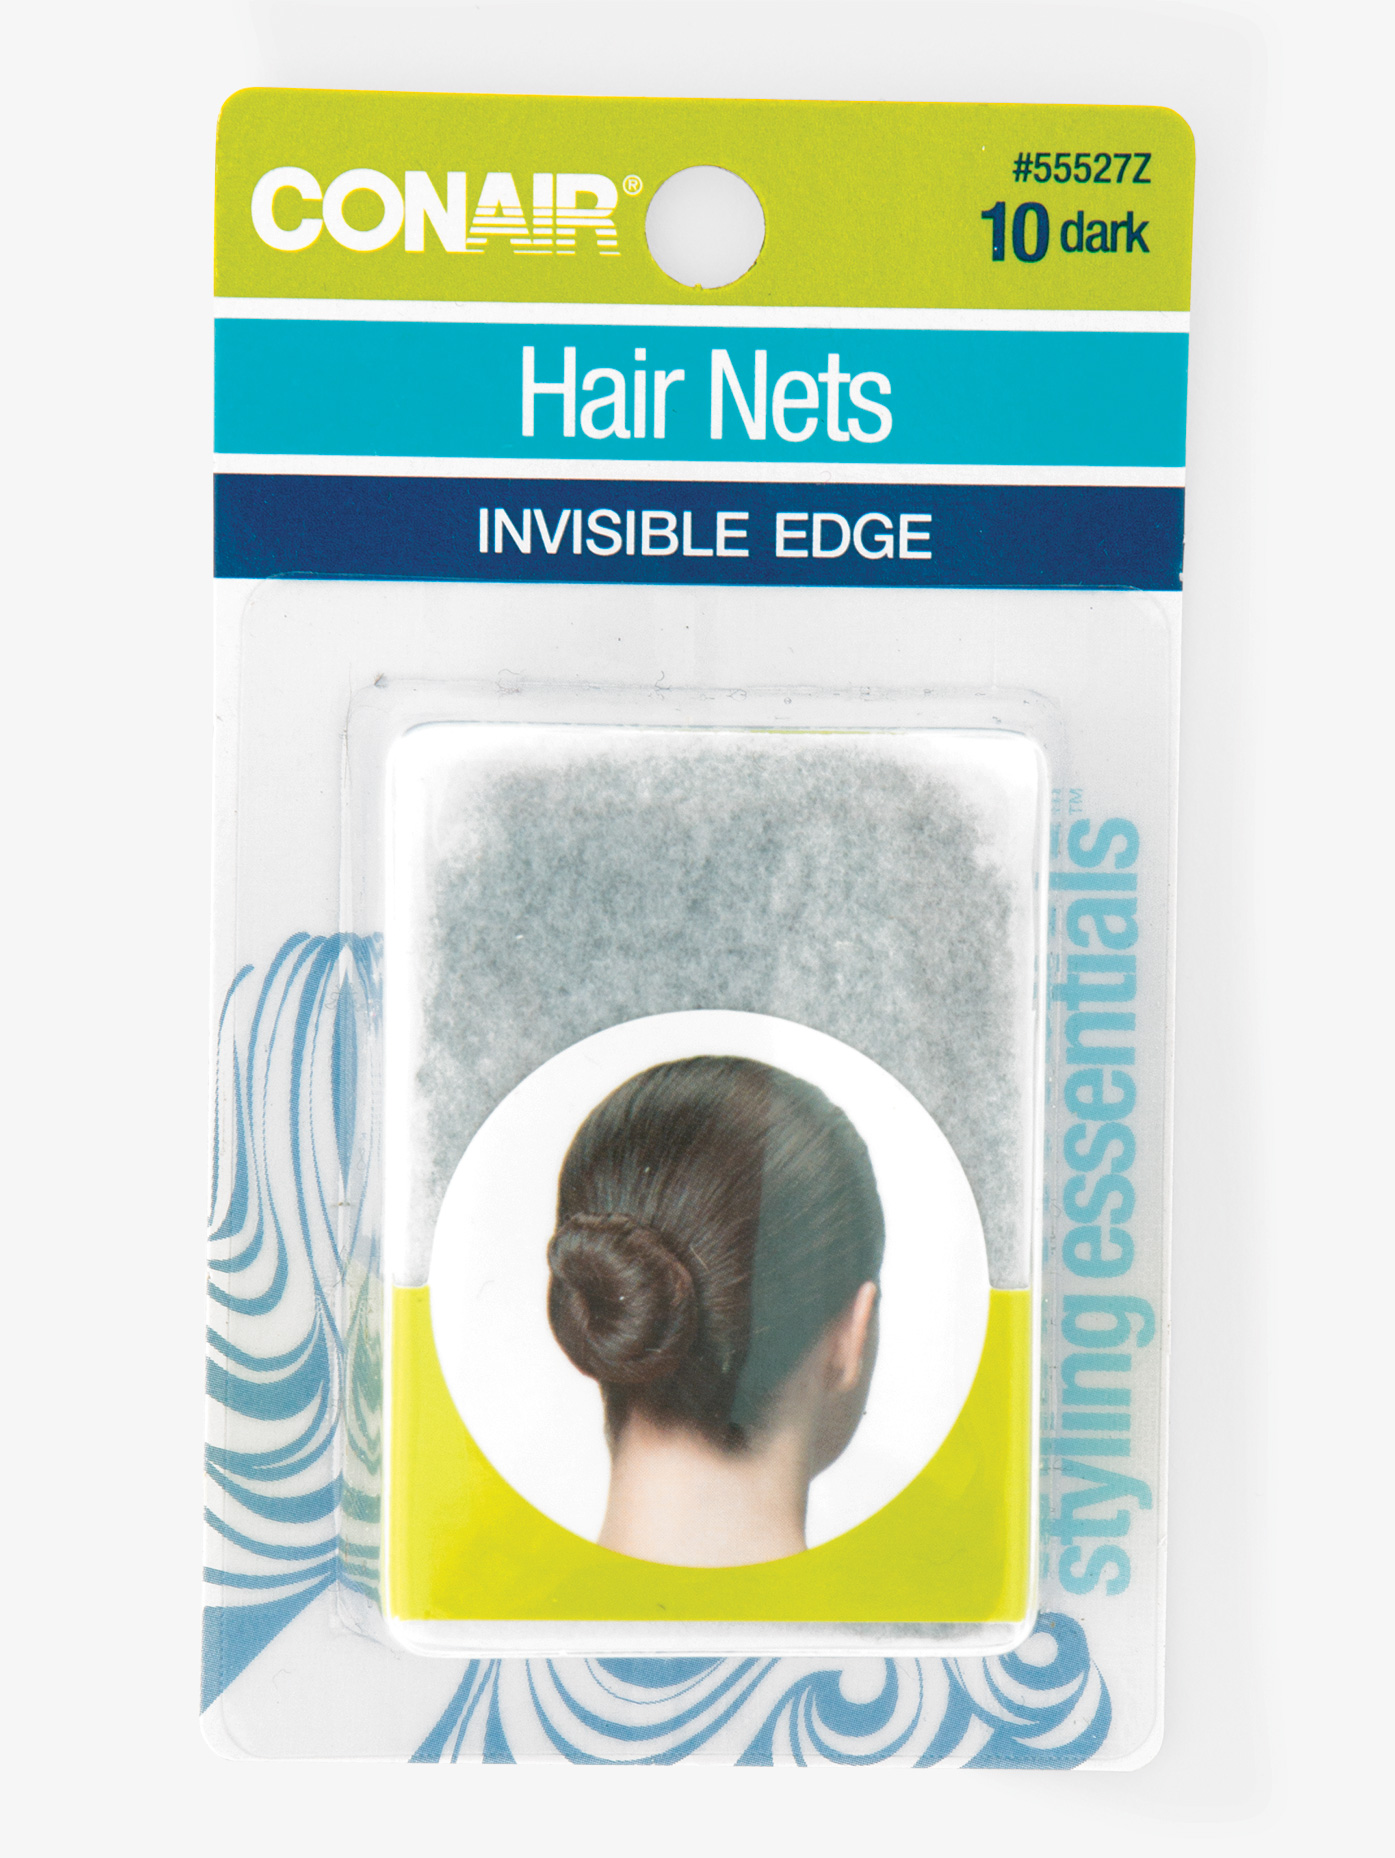 Conair Invisible Edge Hair Nets CJ5552